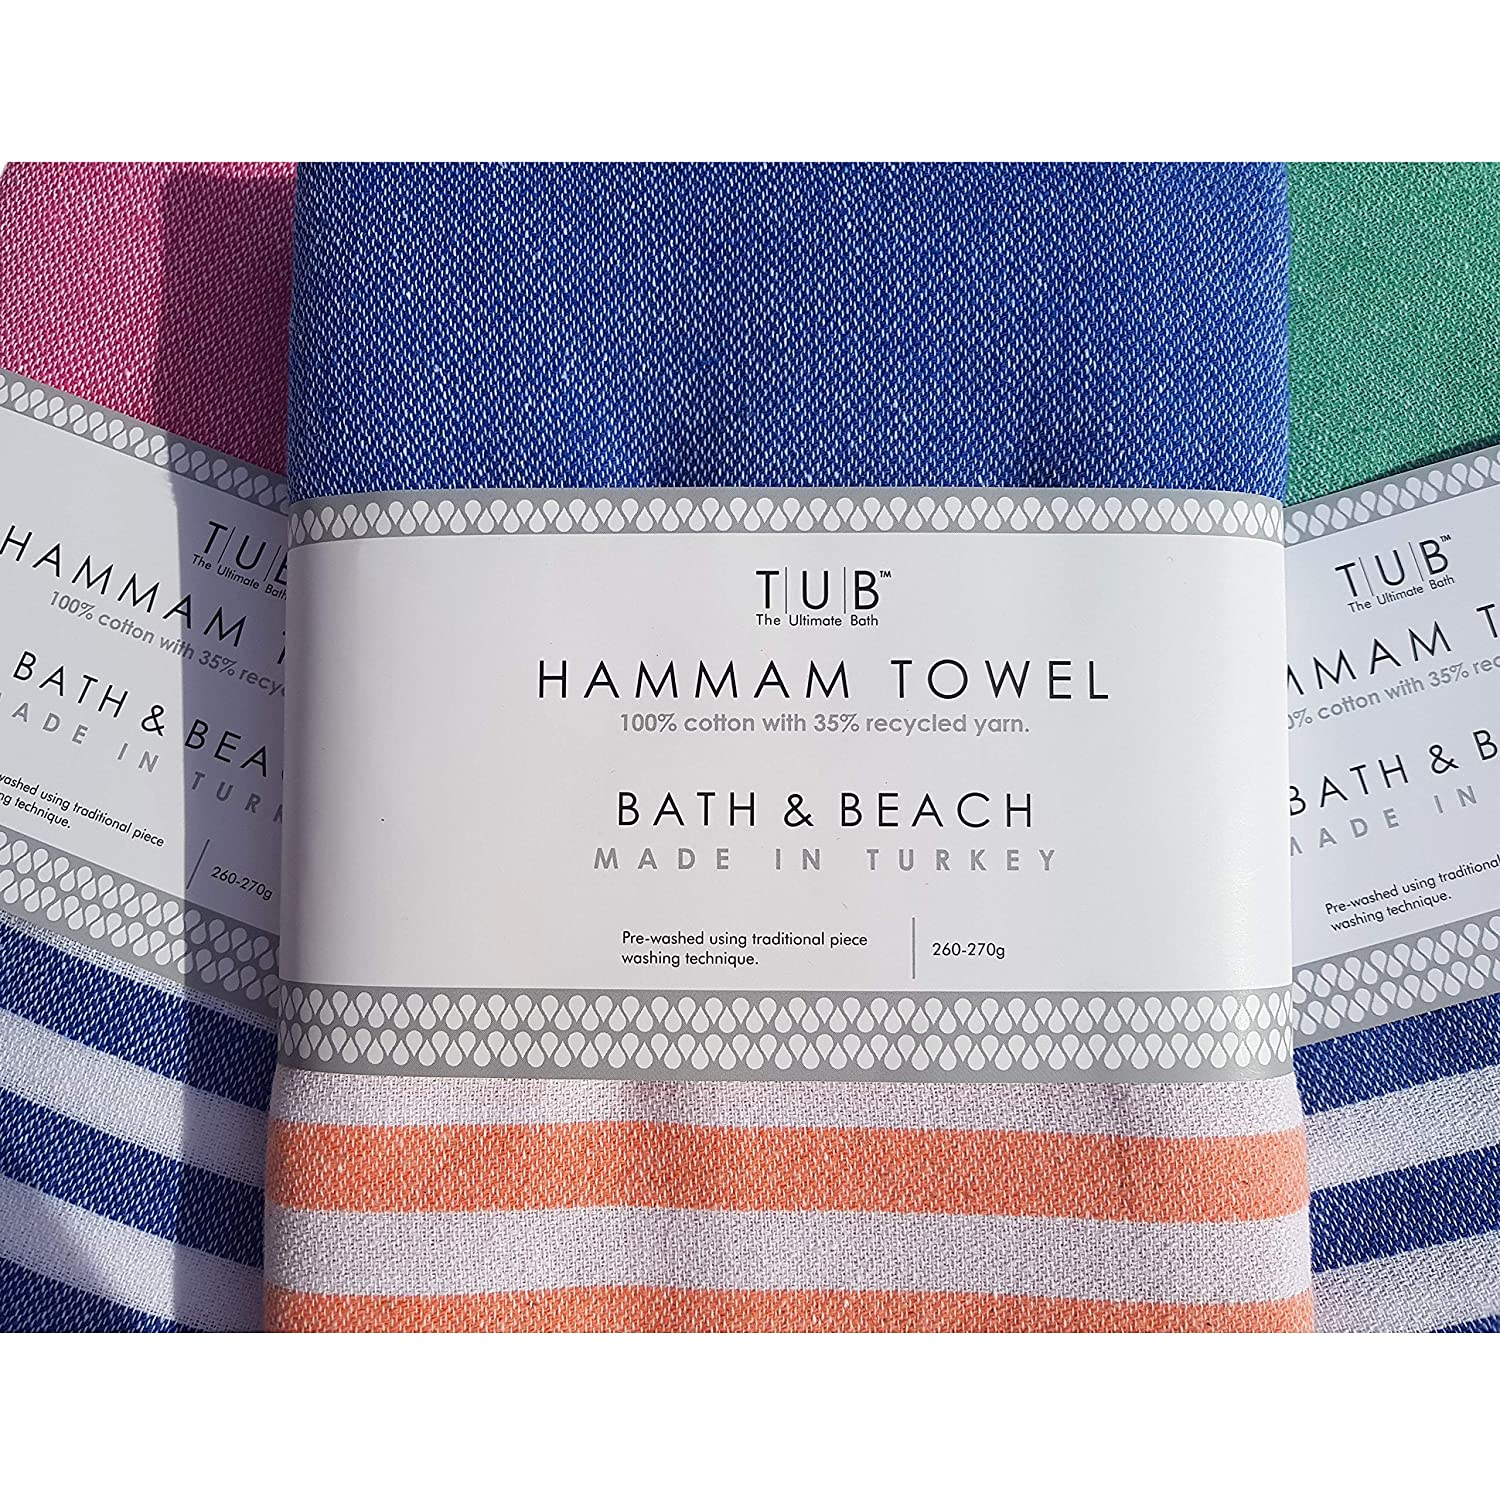 100 x 180cm XL Eco-friendly Hammam Turkish Towel by TUB Lightweight gift travel beach holiday spa NIGHT BLUE /& ORANGE ***LAUNCH OFFER RRP /£24.99*** Made with 100/% cotton /& 35/% recycled yarns